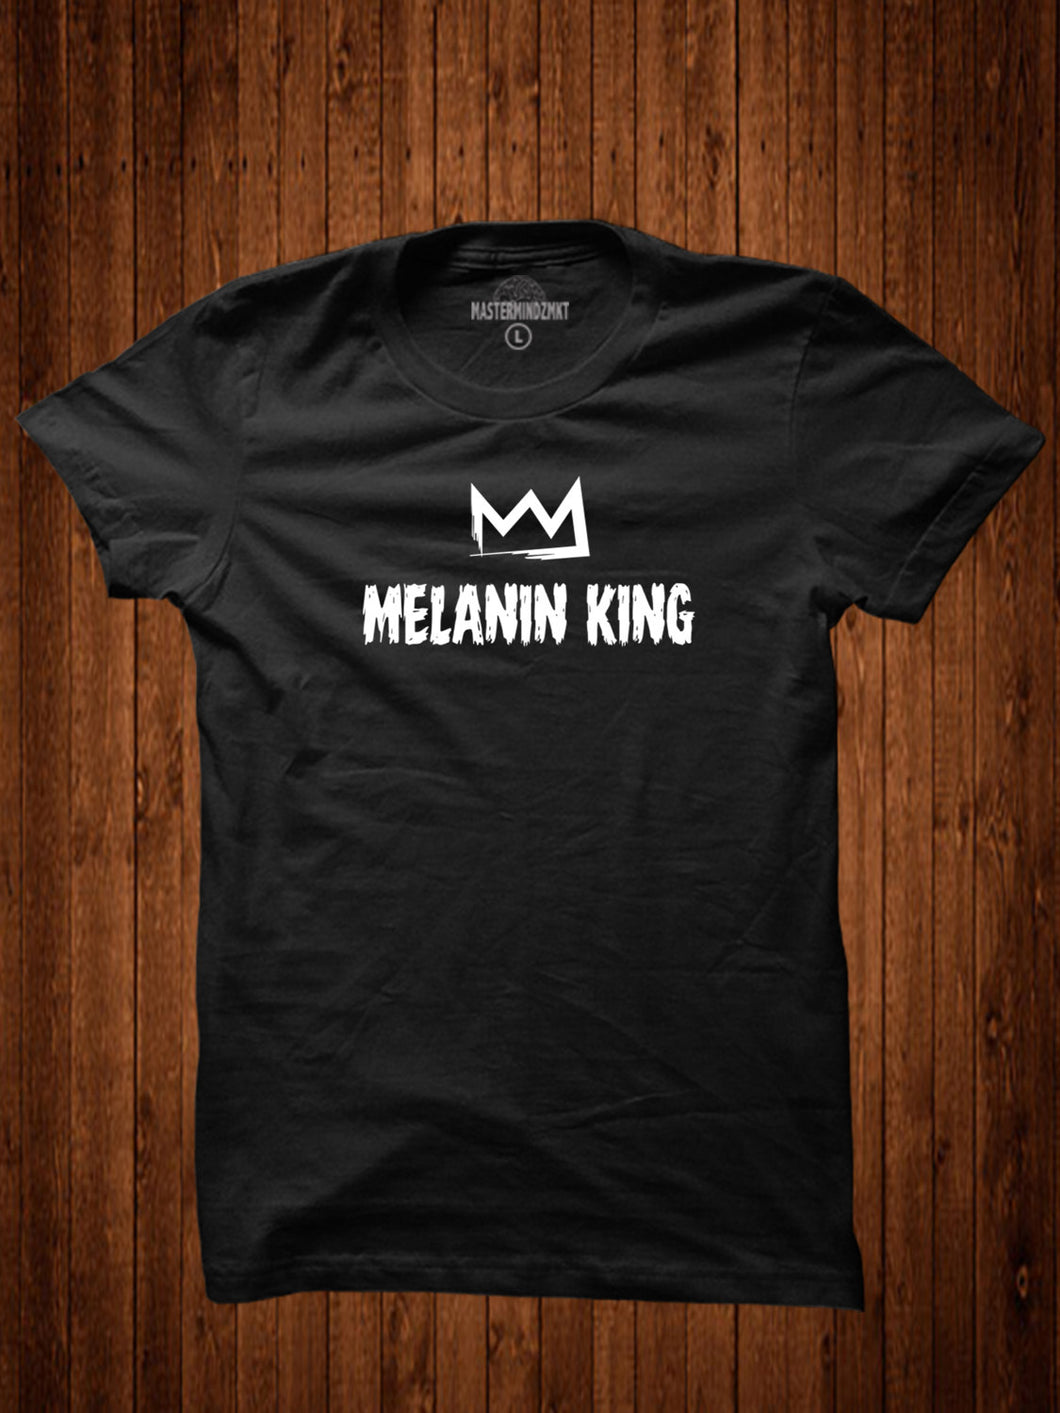 Melanin King, Black History Month, Black Lives Matter, Black Pride, Black Empowerment, Afrocentric, Inspirational Shirt, Gift for him